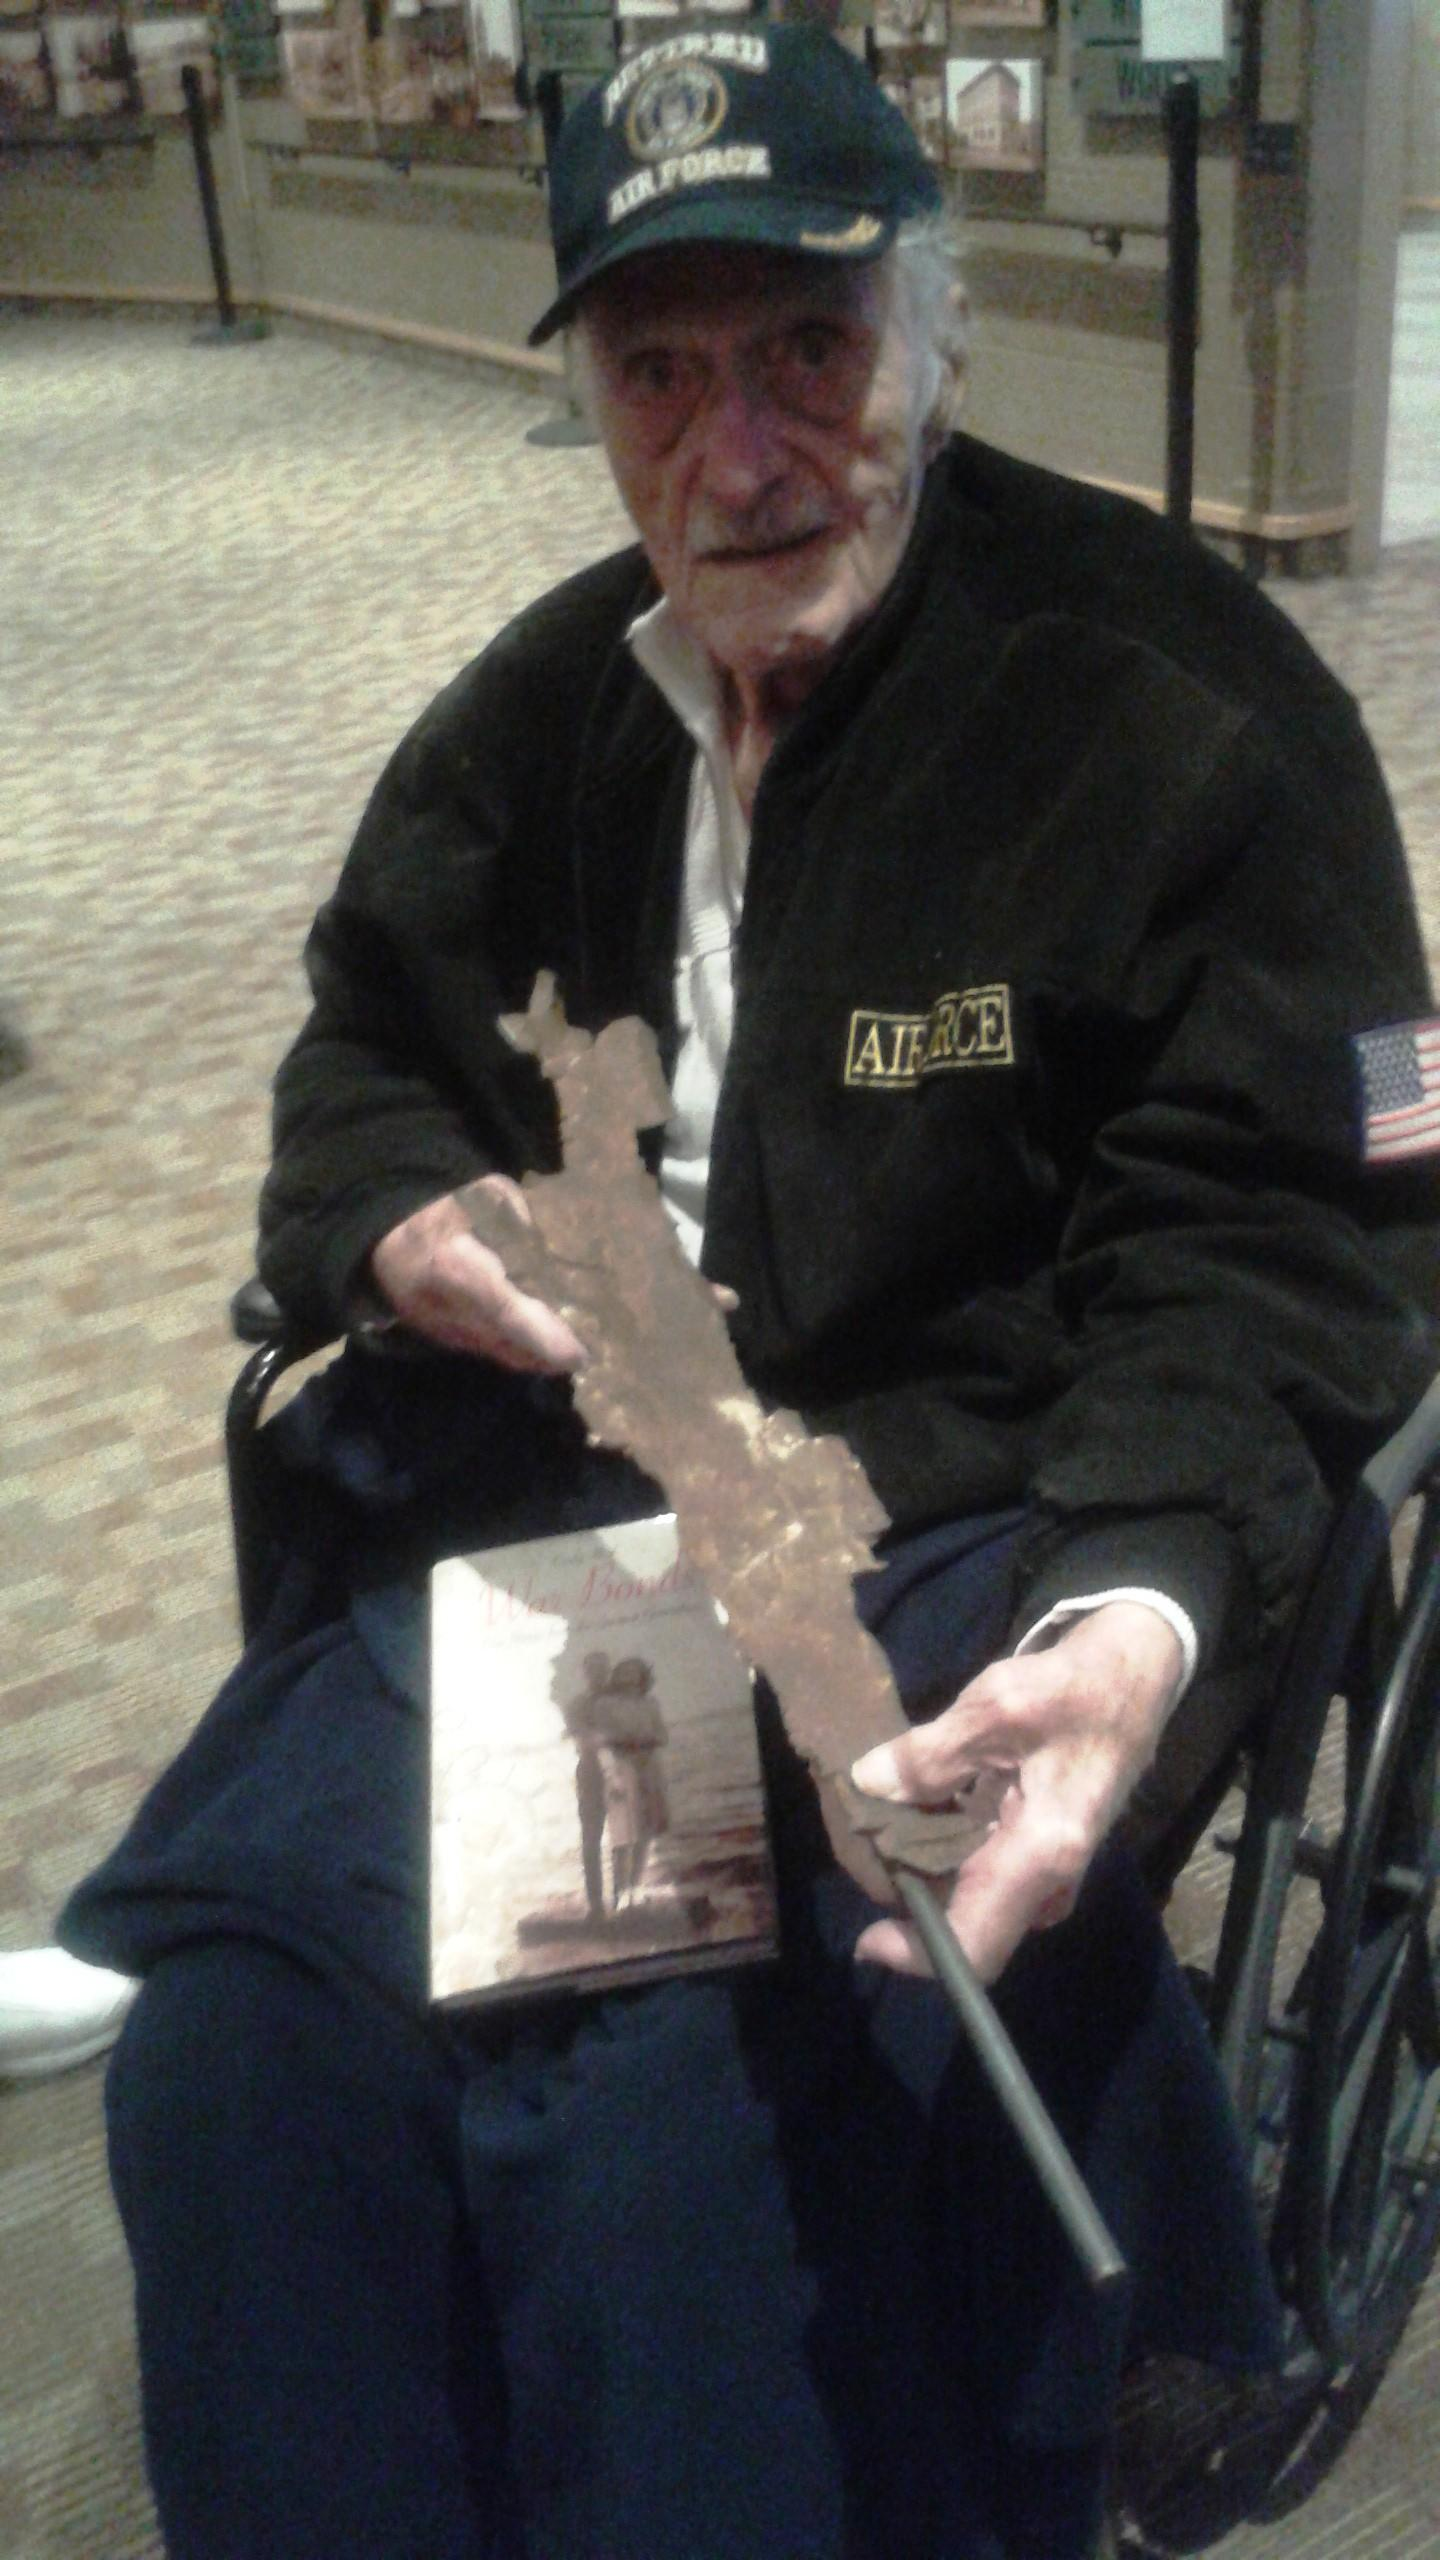 Nick Gaynos holding the piece of shrapnel that landed near him while under fire during the attack on Pearl Harbor 75 years ago. Gaynos died 20 days after this March 11, 2015, photograph. (Courtesy Cindy Hval)